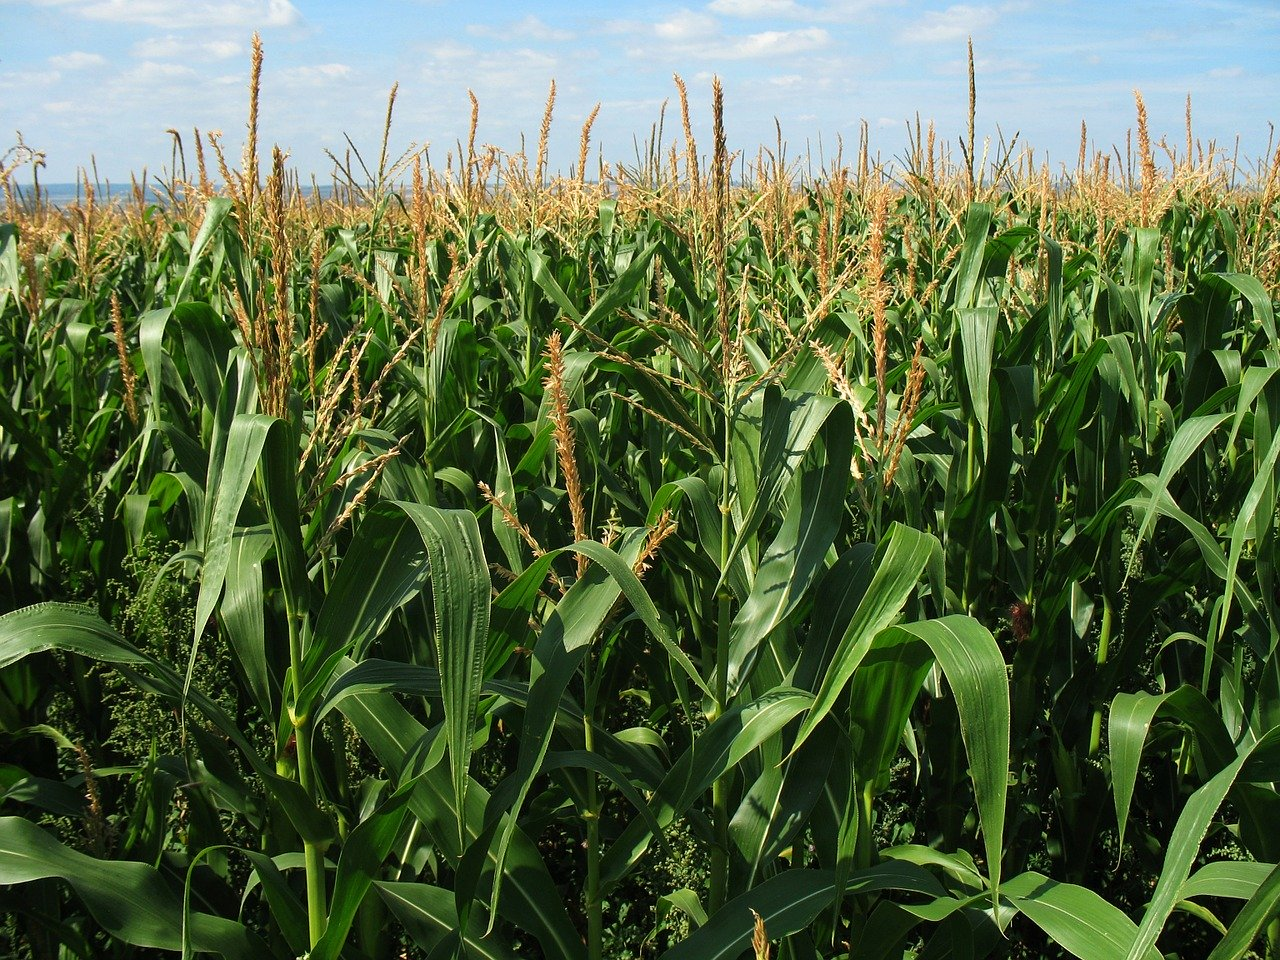 Maize,corn,bunkerplants